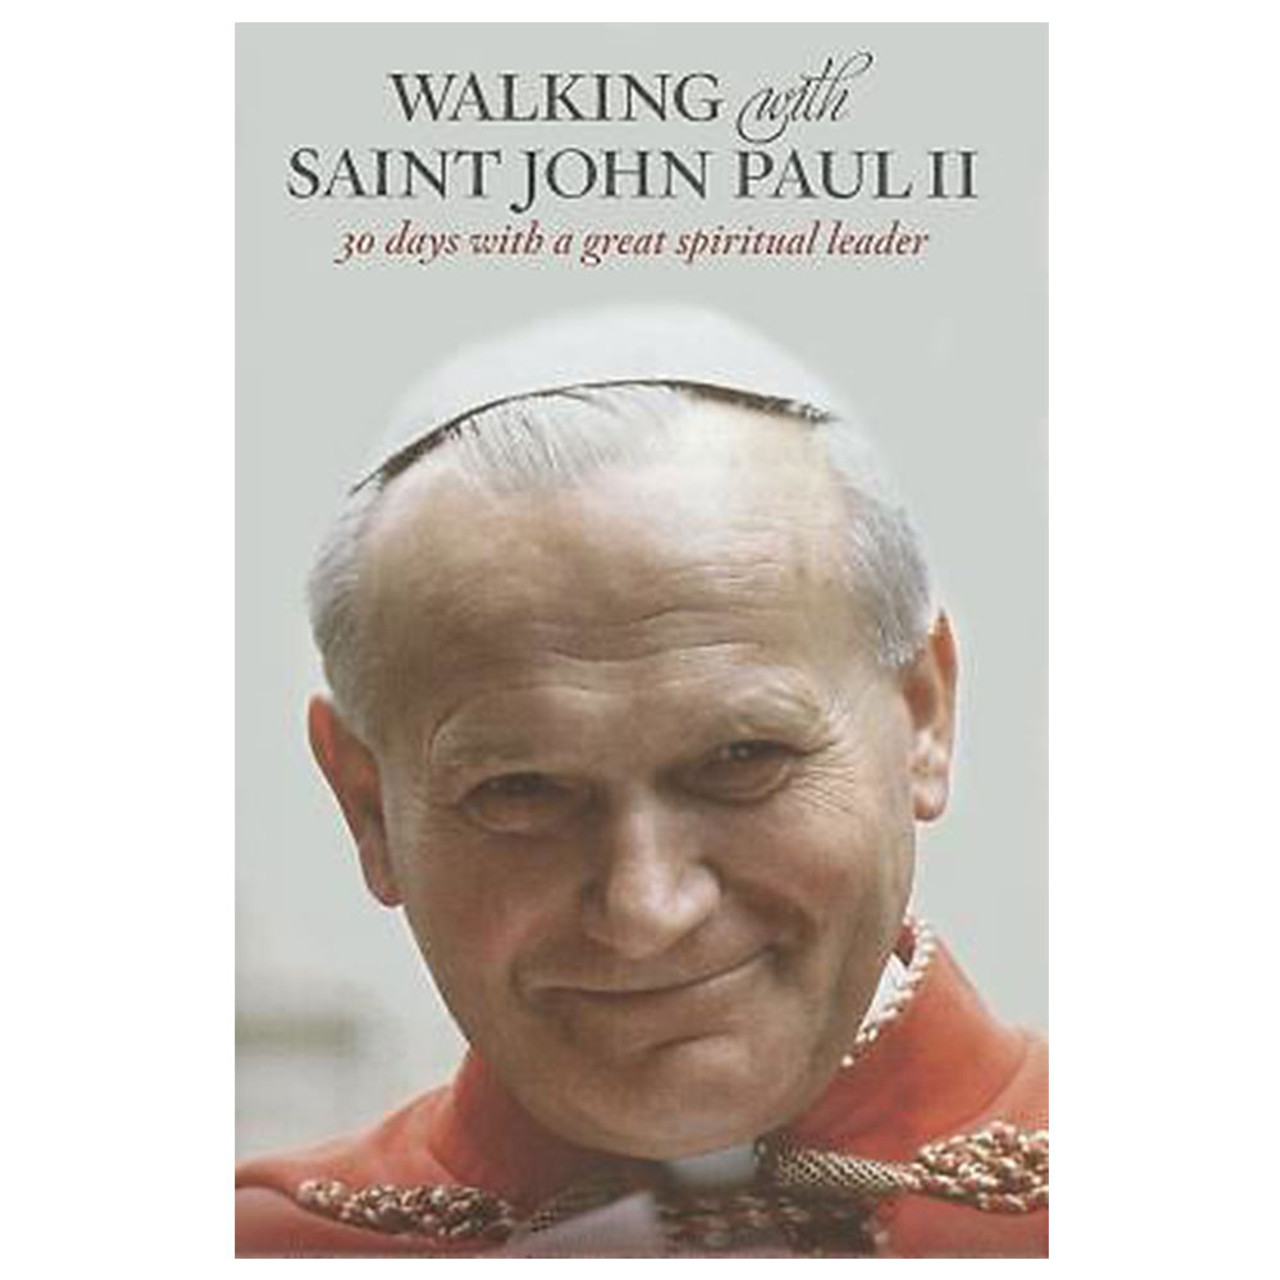 Walking With Saint John Paul II Booklet